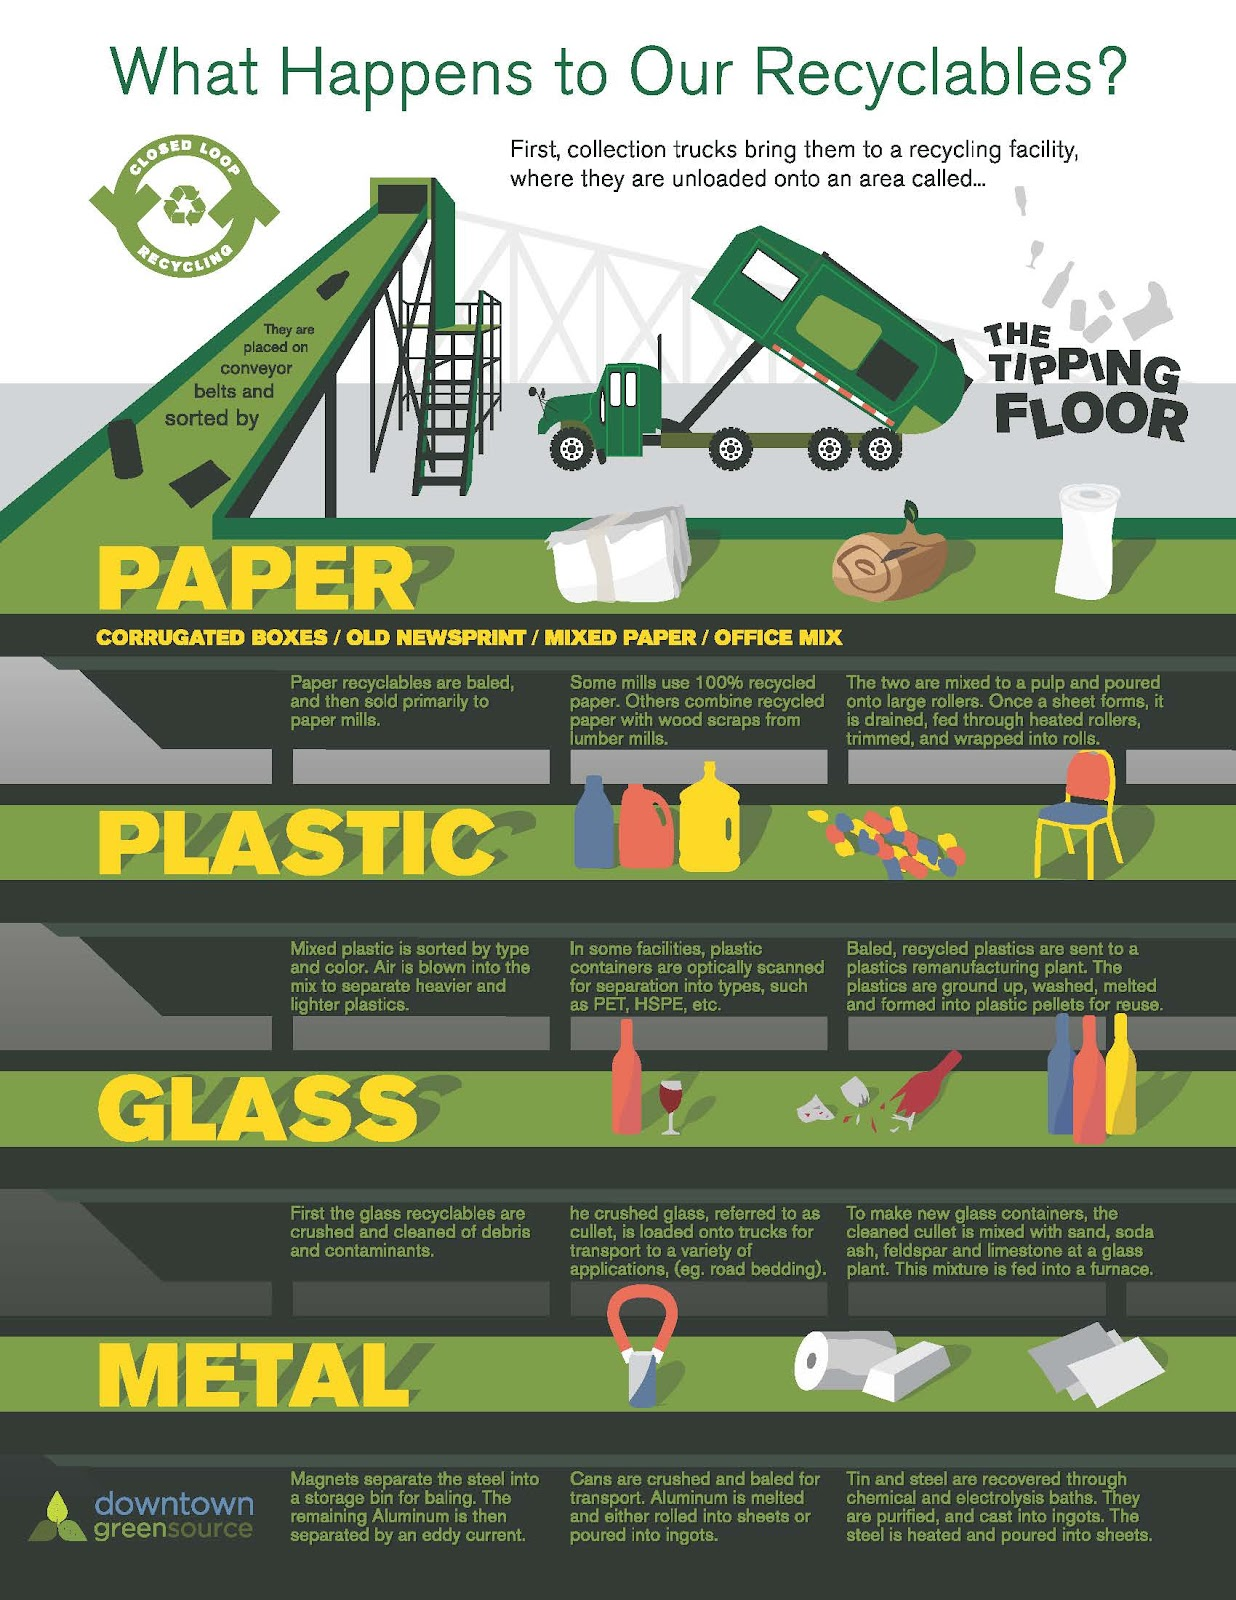 recycling of waste materials essay Material thrown into the recycling bin is another form of trash as with any waste, it has to be transported and processed somewhere this means creating additional locations of potentially hazardous waste.